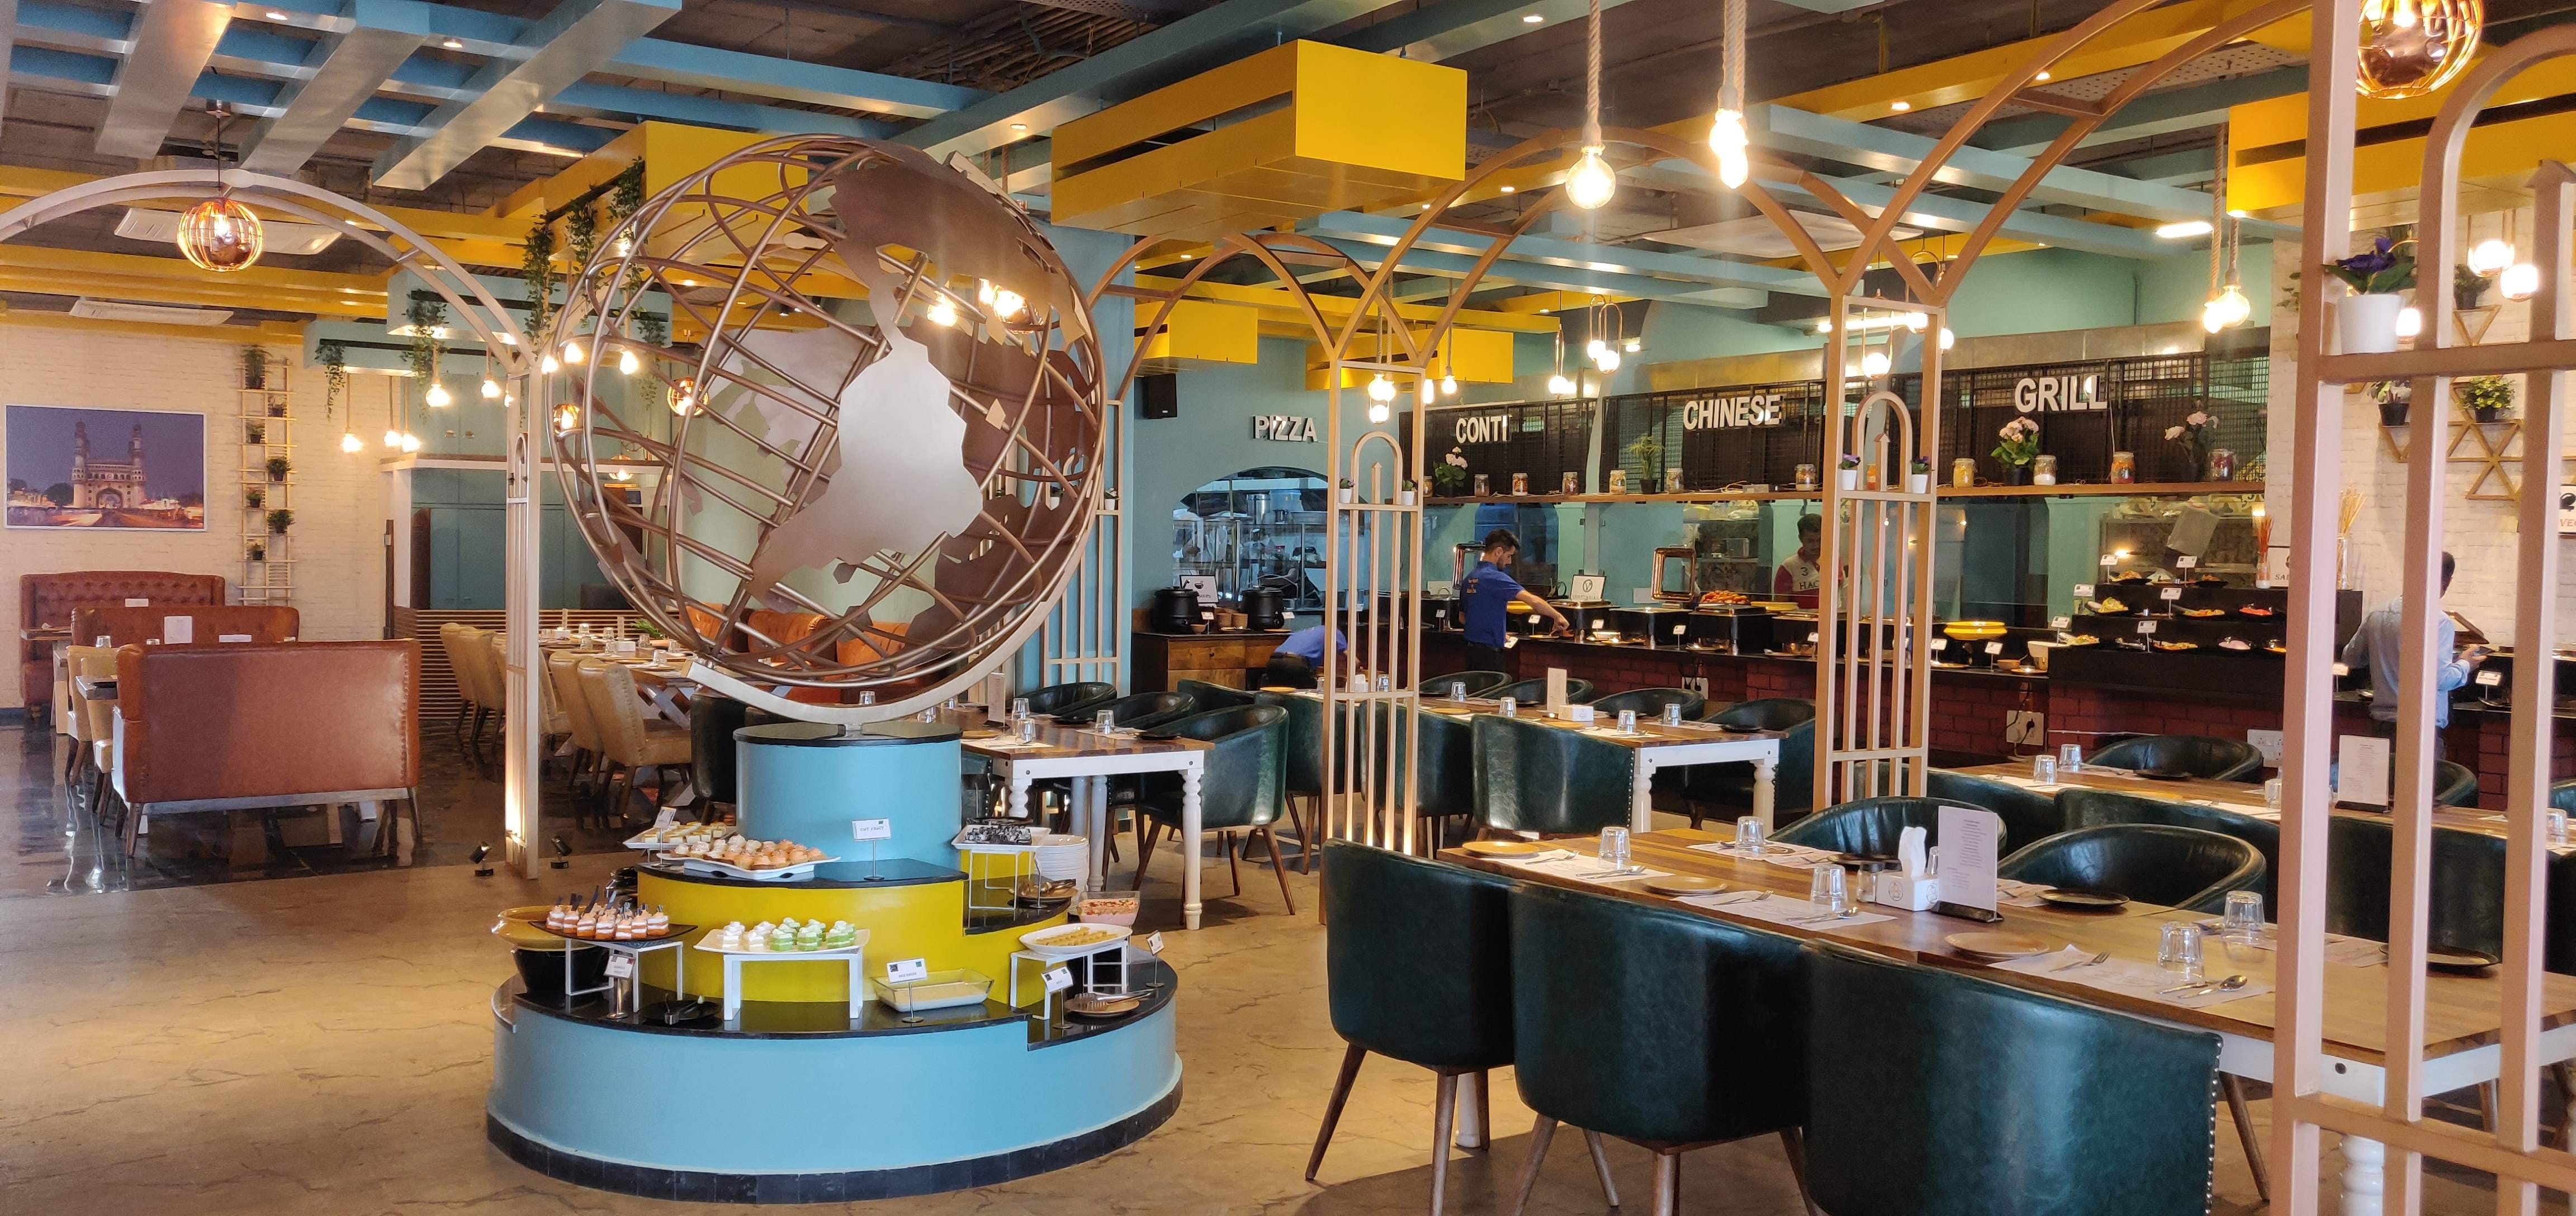 Have You Checked Out This Newest Buffet Place In Hyderabad?